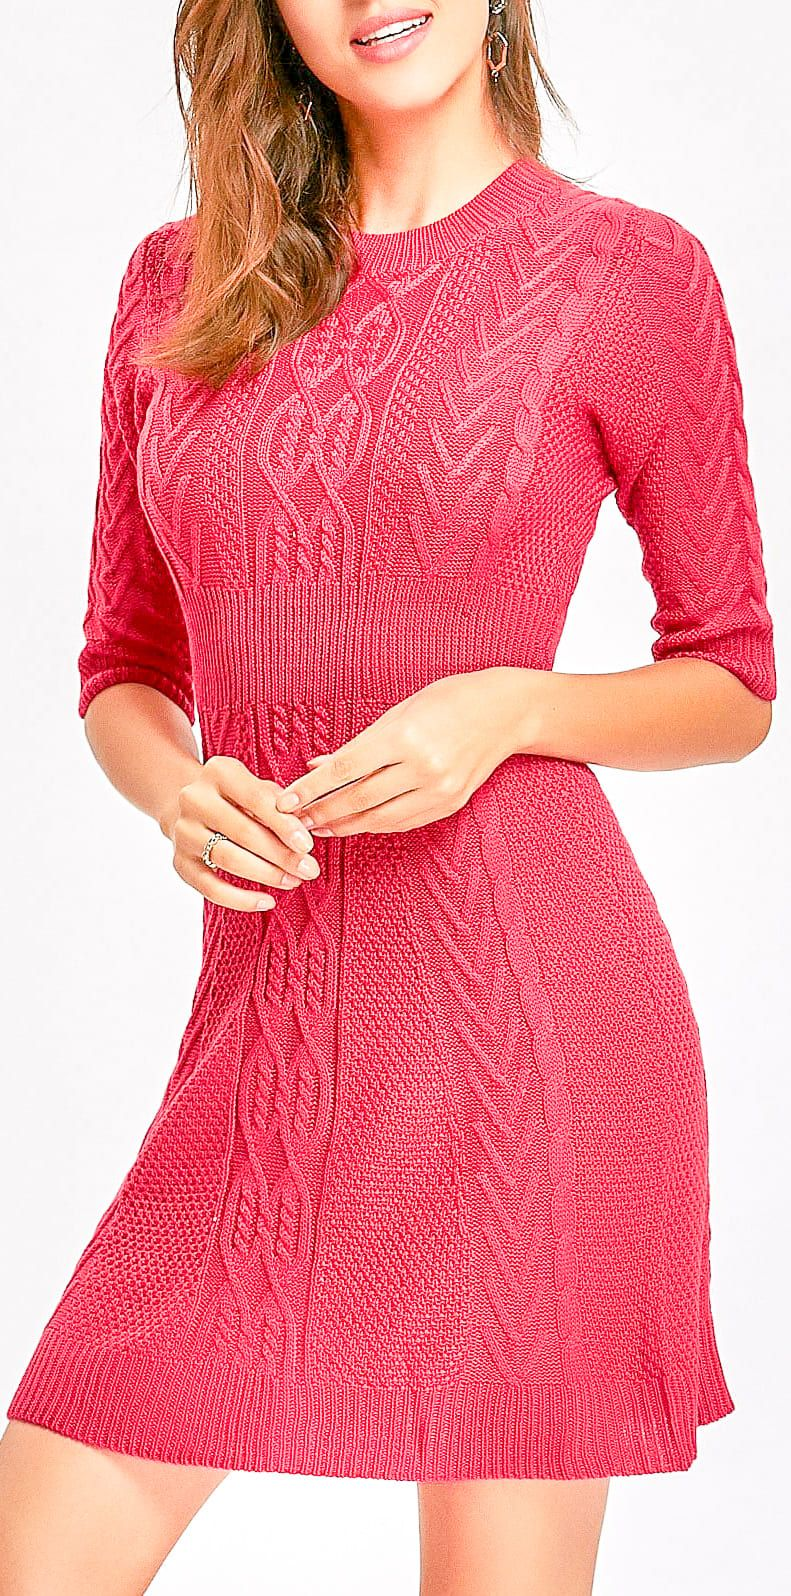 56+ Free and Stylish Crochet Dress Pattern Design Ideas for ...